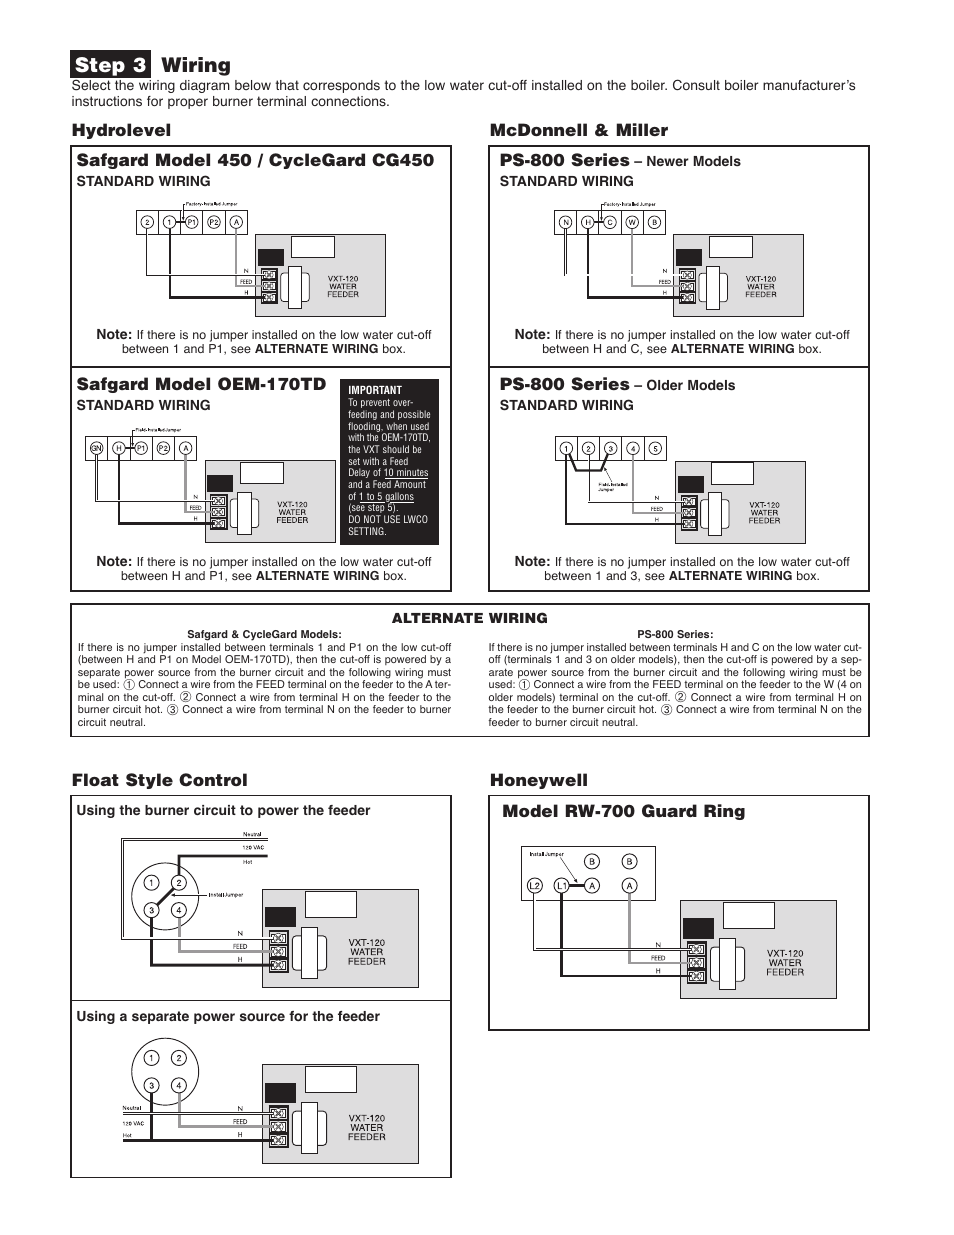 Step 3 wiring, Mcdonnell & miller, Ps-800 series | Hydrolevel VXT-120 V2  User Manual | Page 2 / 4